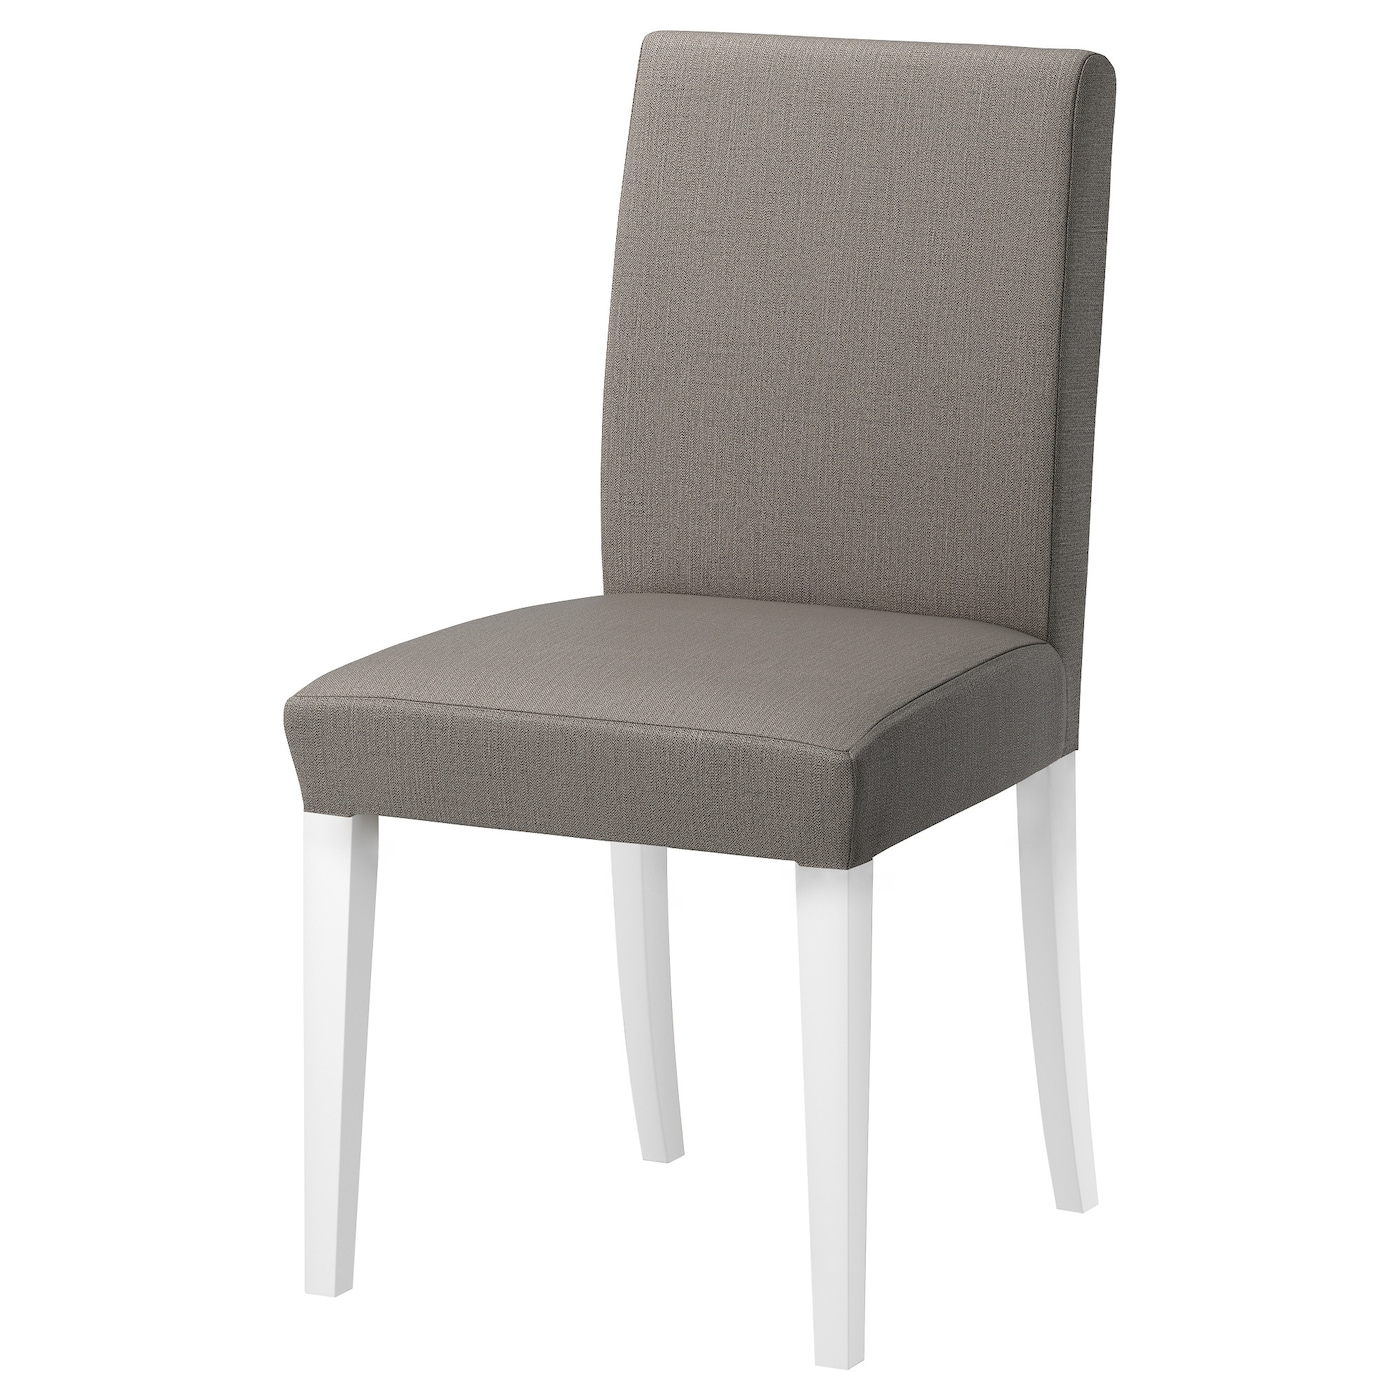 henriksdal chair white nolhaga grey beige ikea. Black Bedroom Furniture Sets. Home Design Ideas